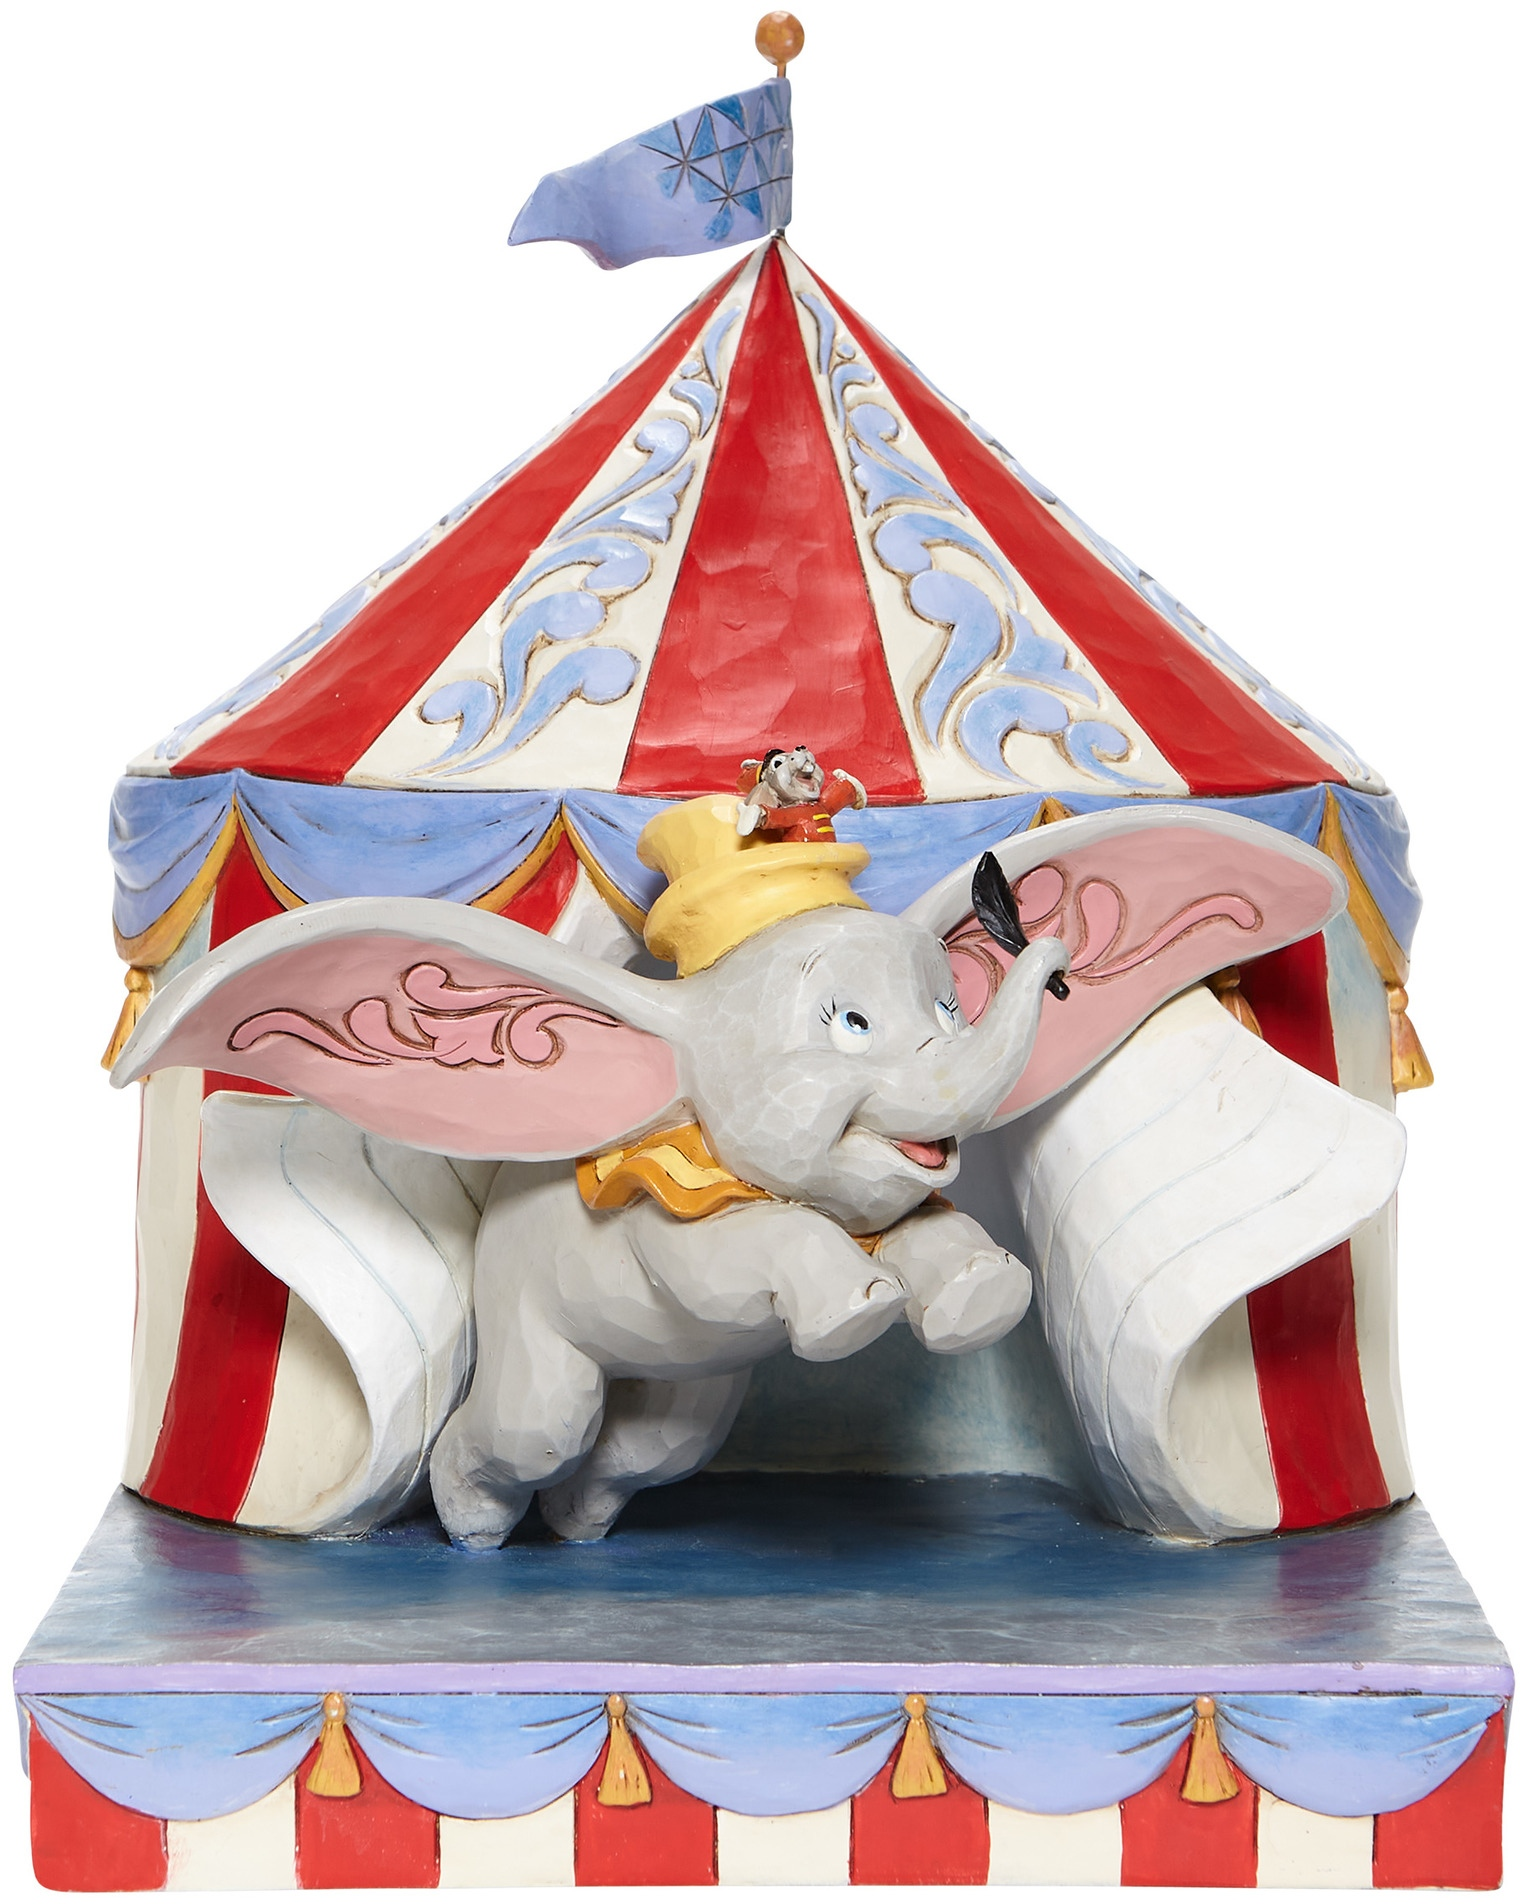 Jim Shore Disney 6008064N Dumbo Flying out of Tent Figurine